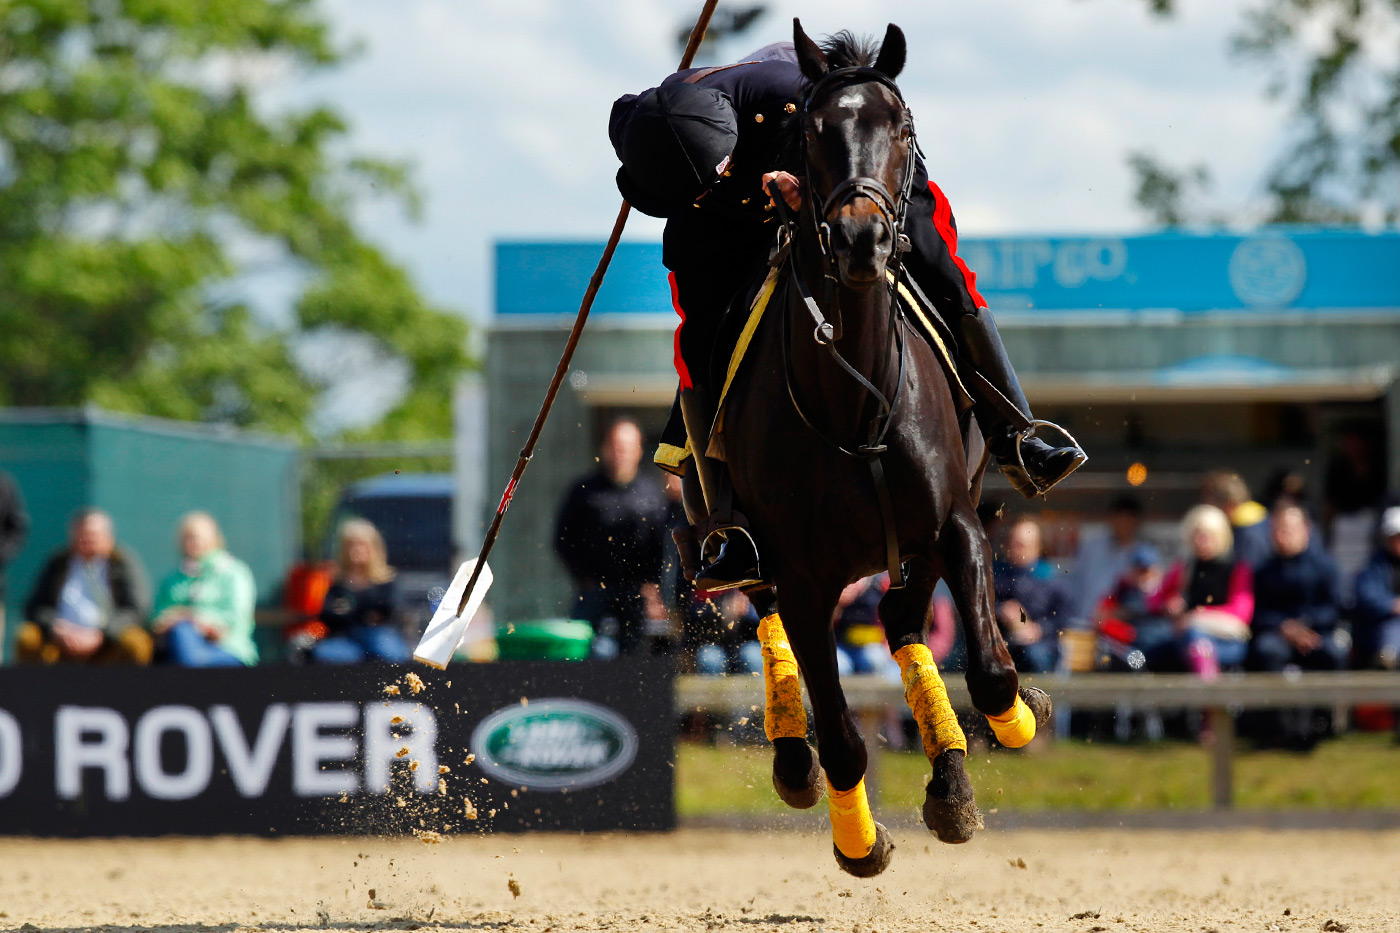 <p>Competitions at the Royal Windsor Horse Show supported by Land Rover</p>